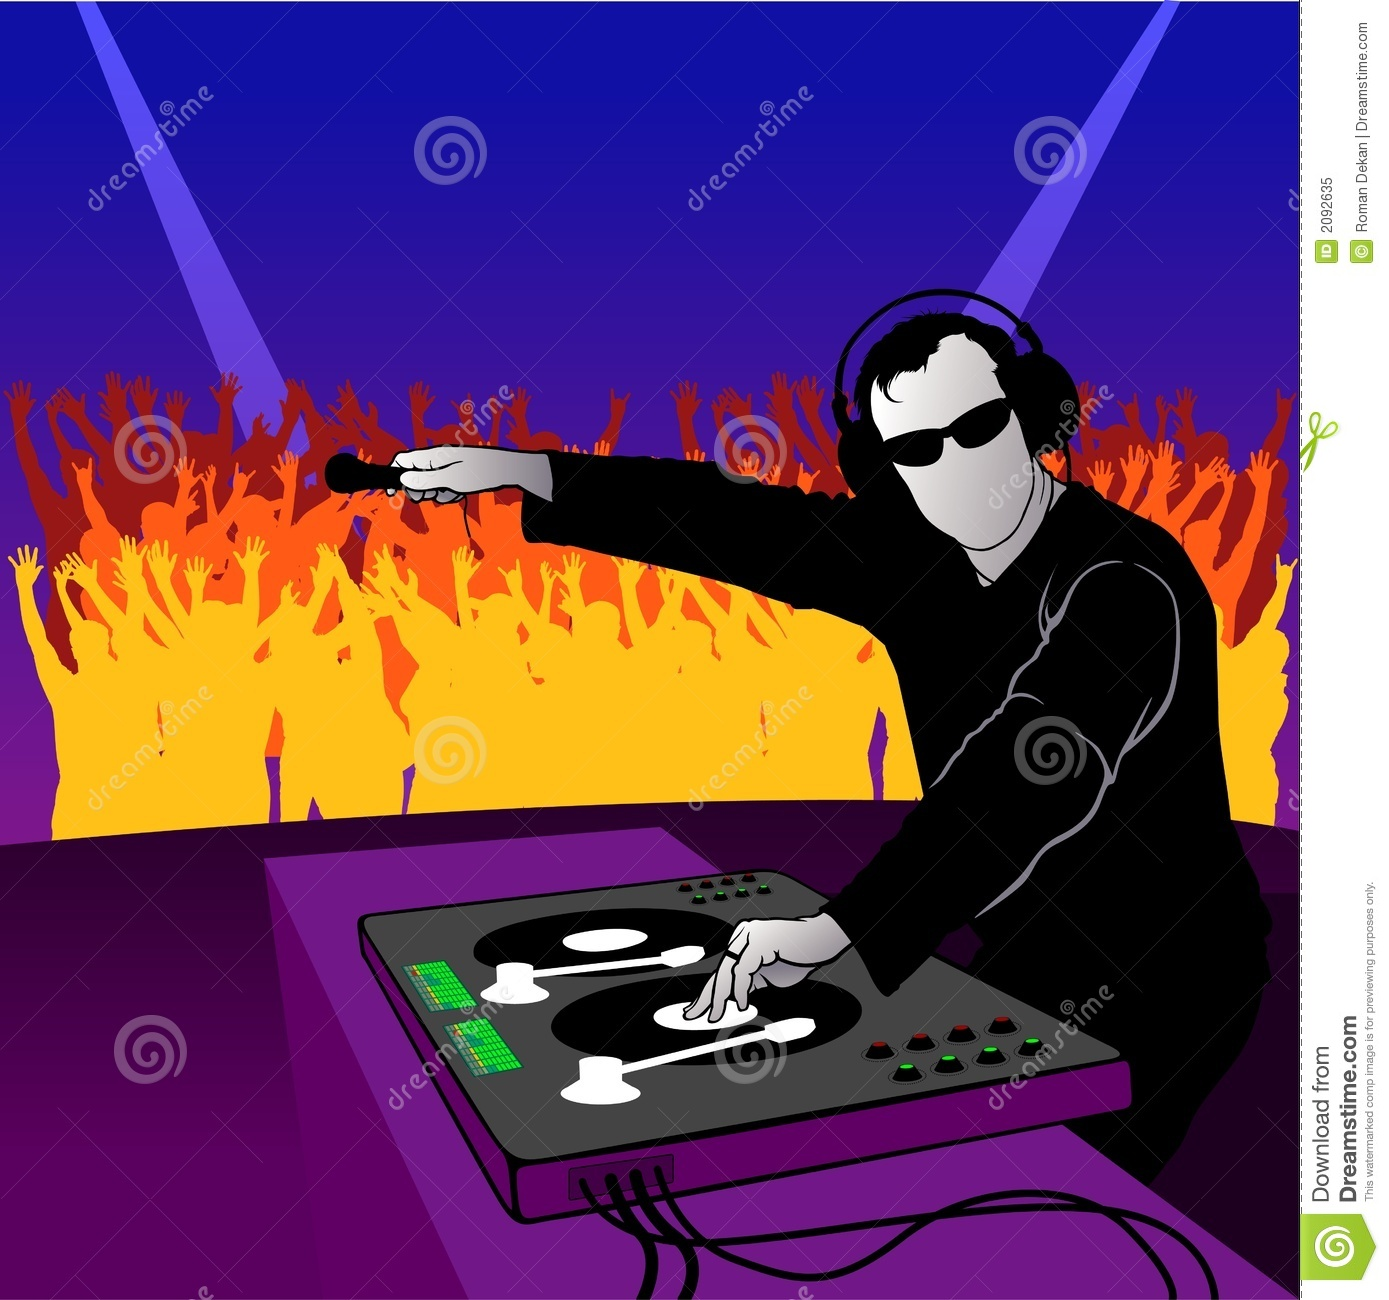 Dj Party Dance Royalty Free Stock Photo Image 2092635